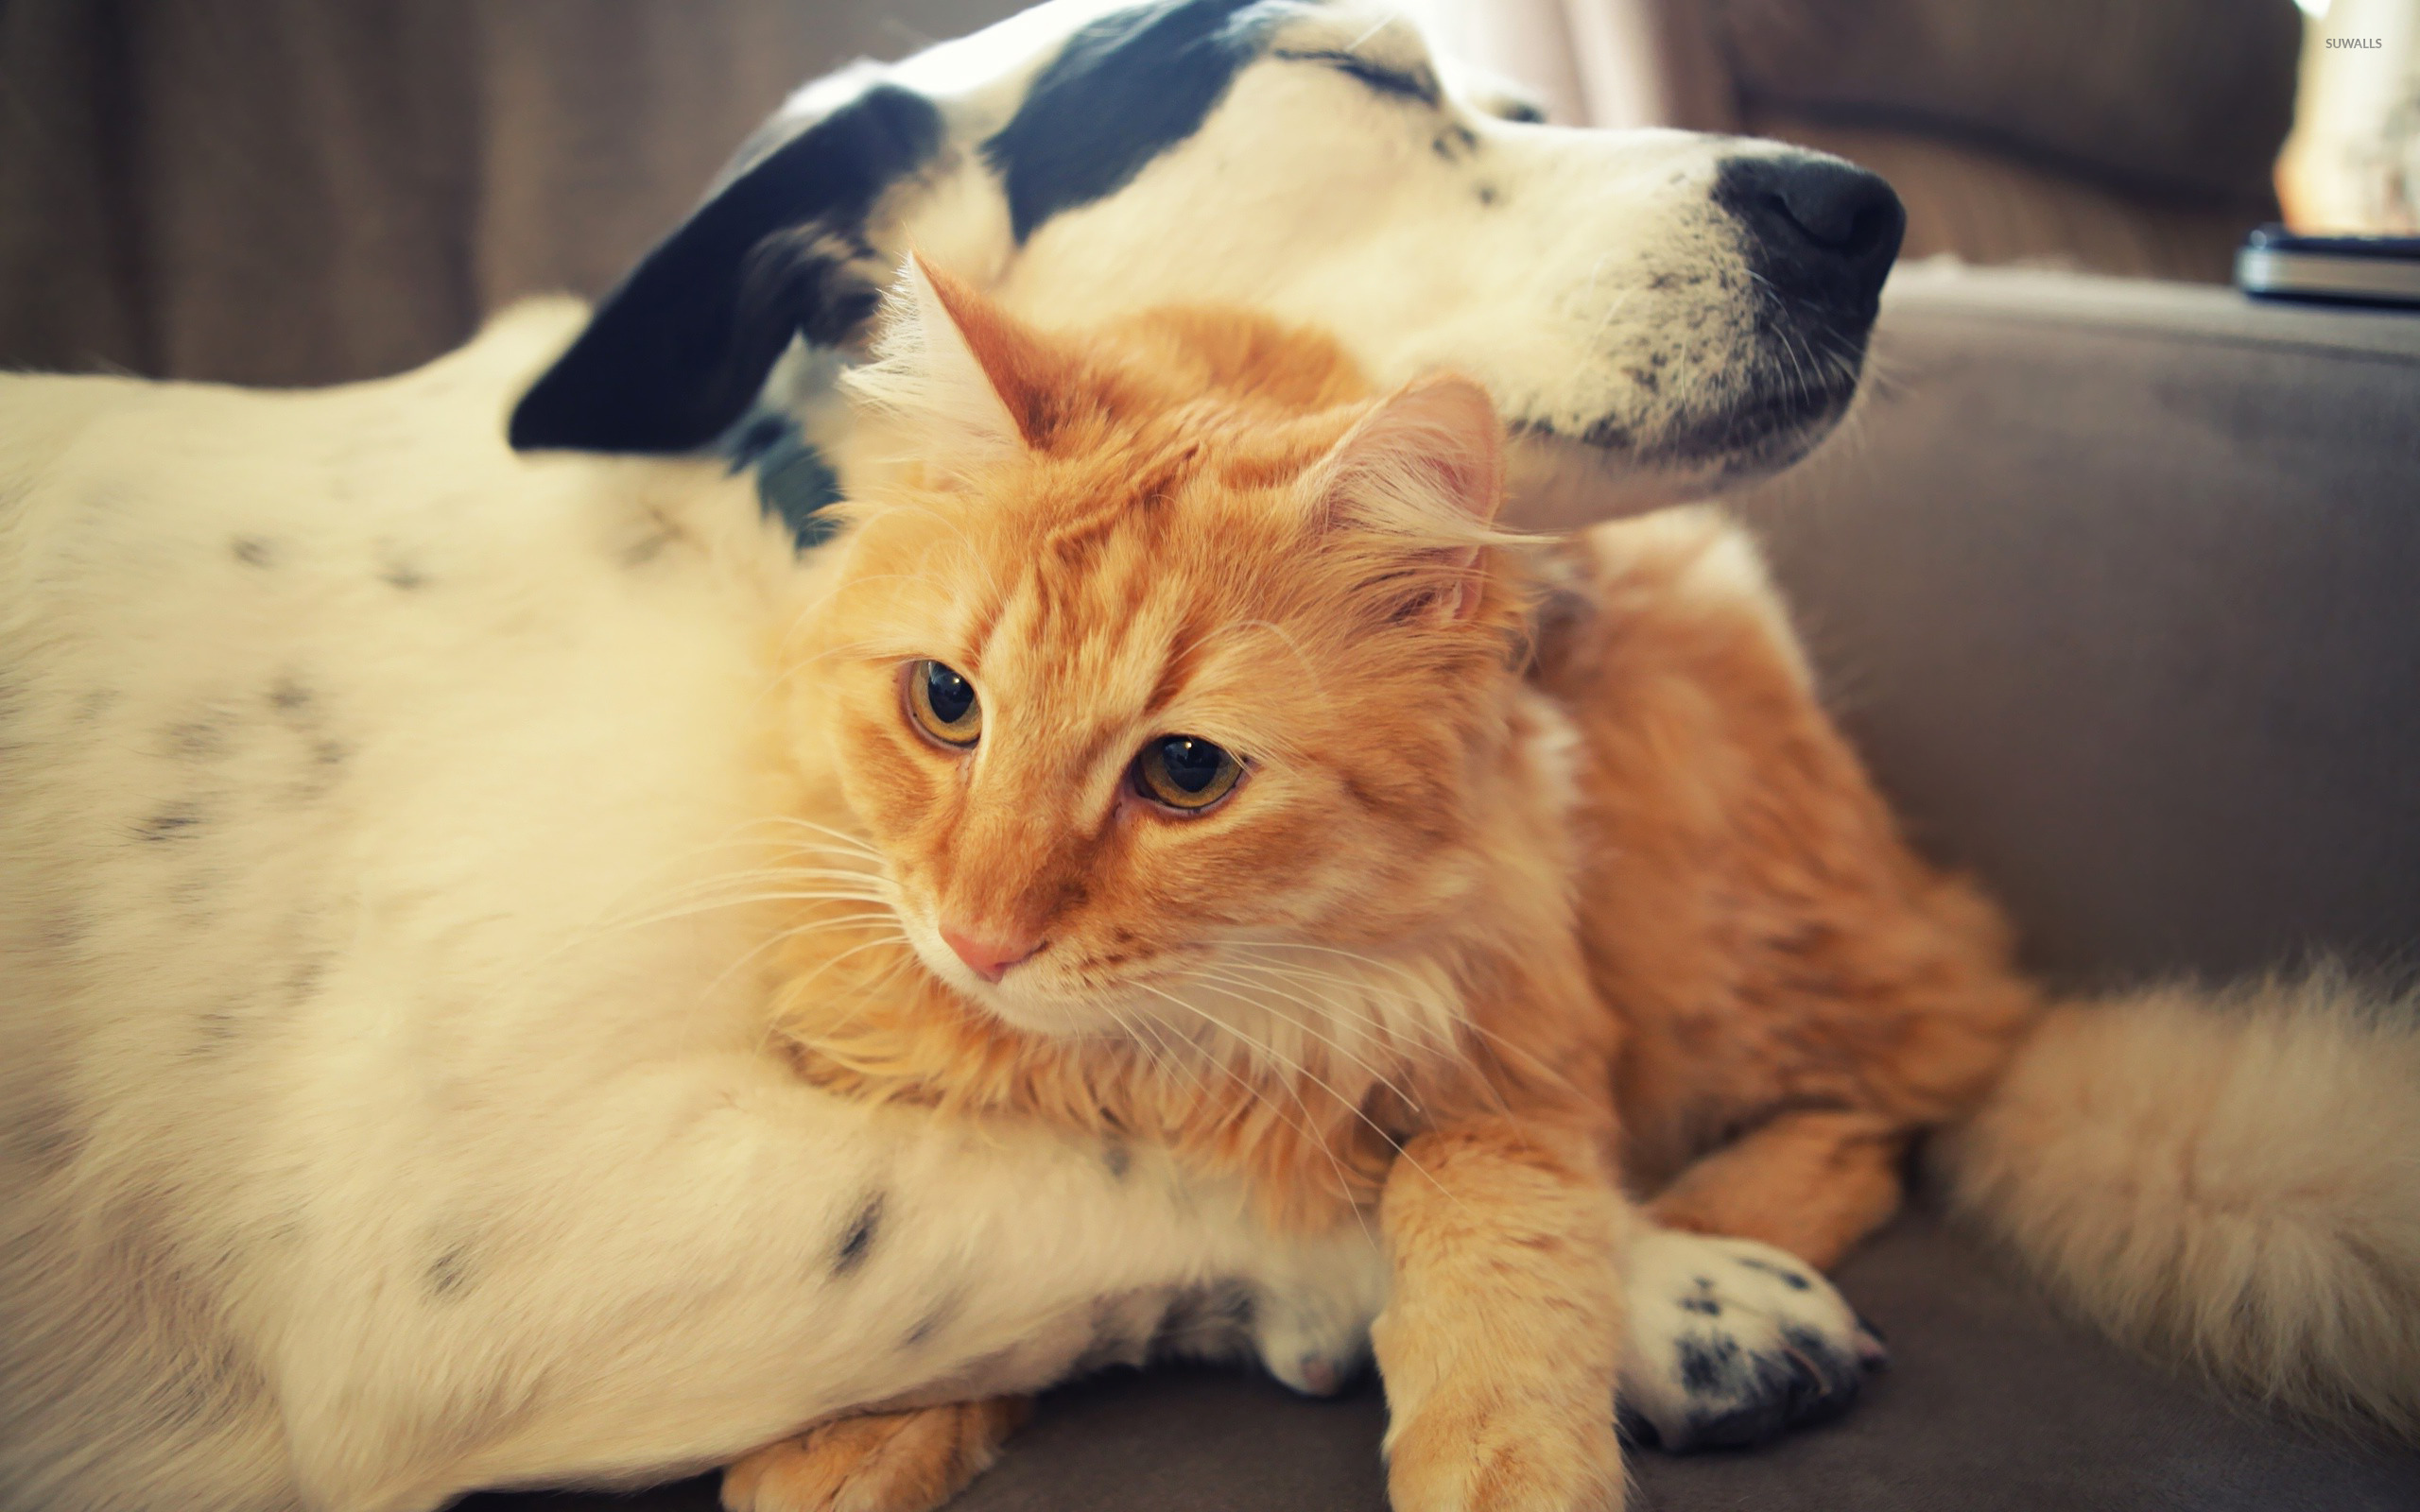 cat and dog love wallpaper - Animal wallpapers - #18262